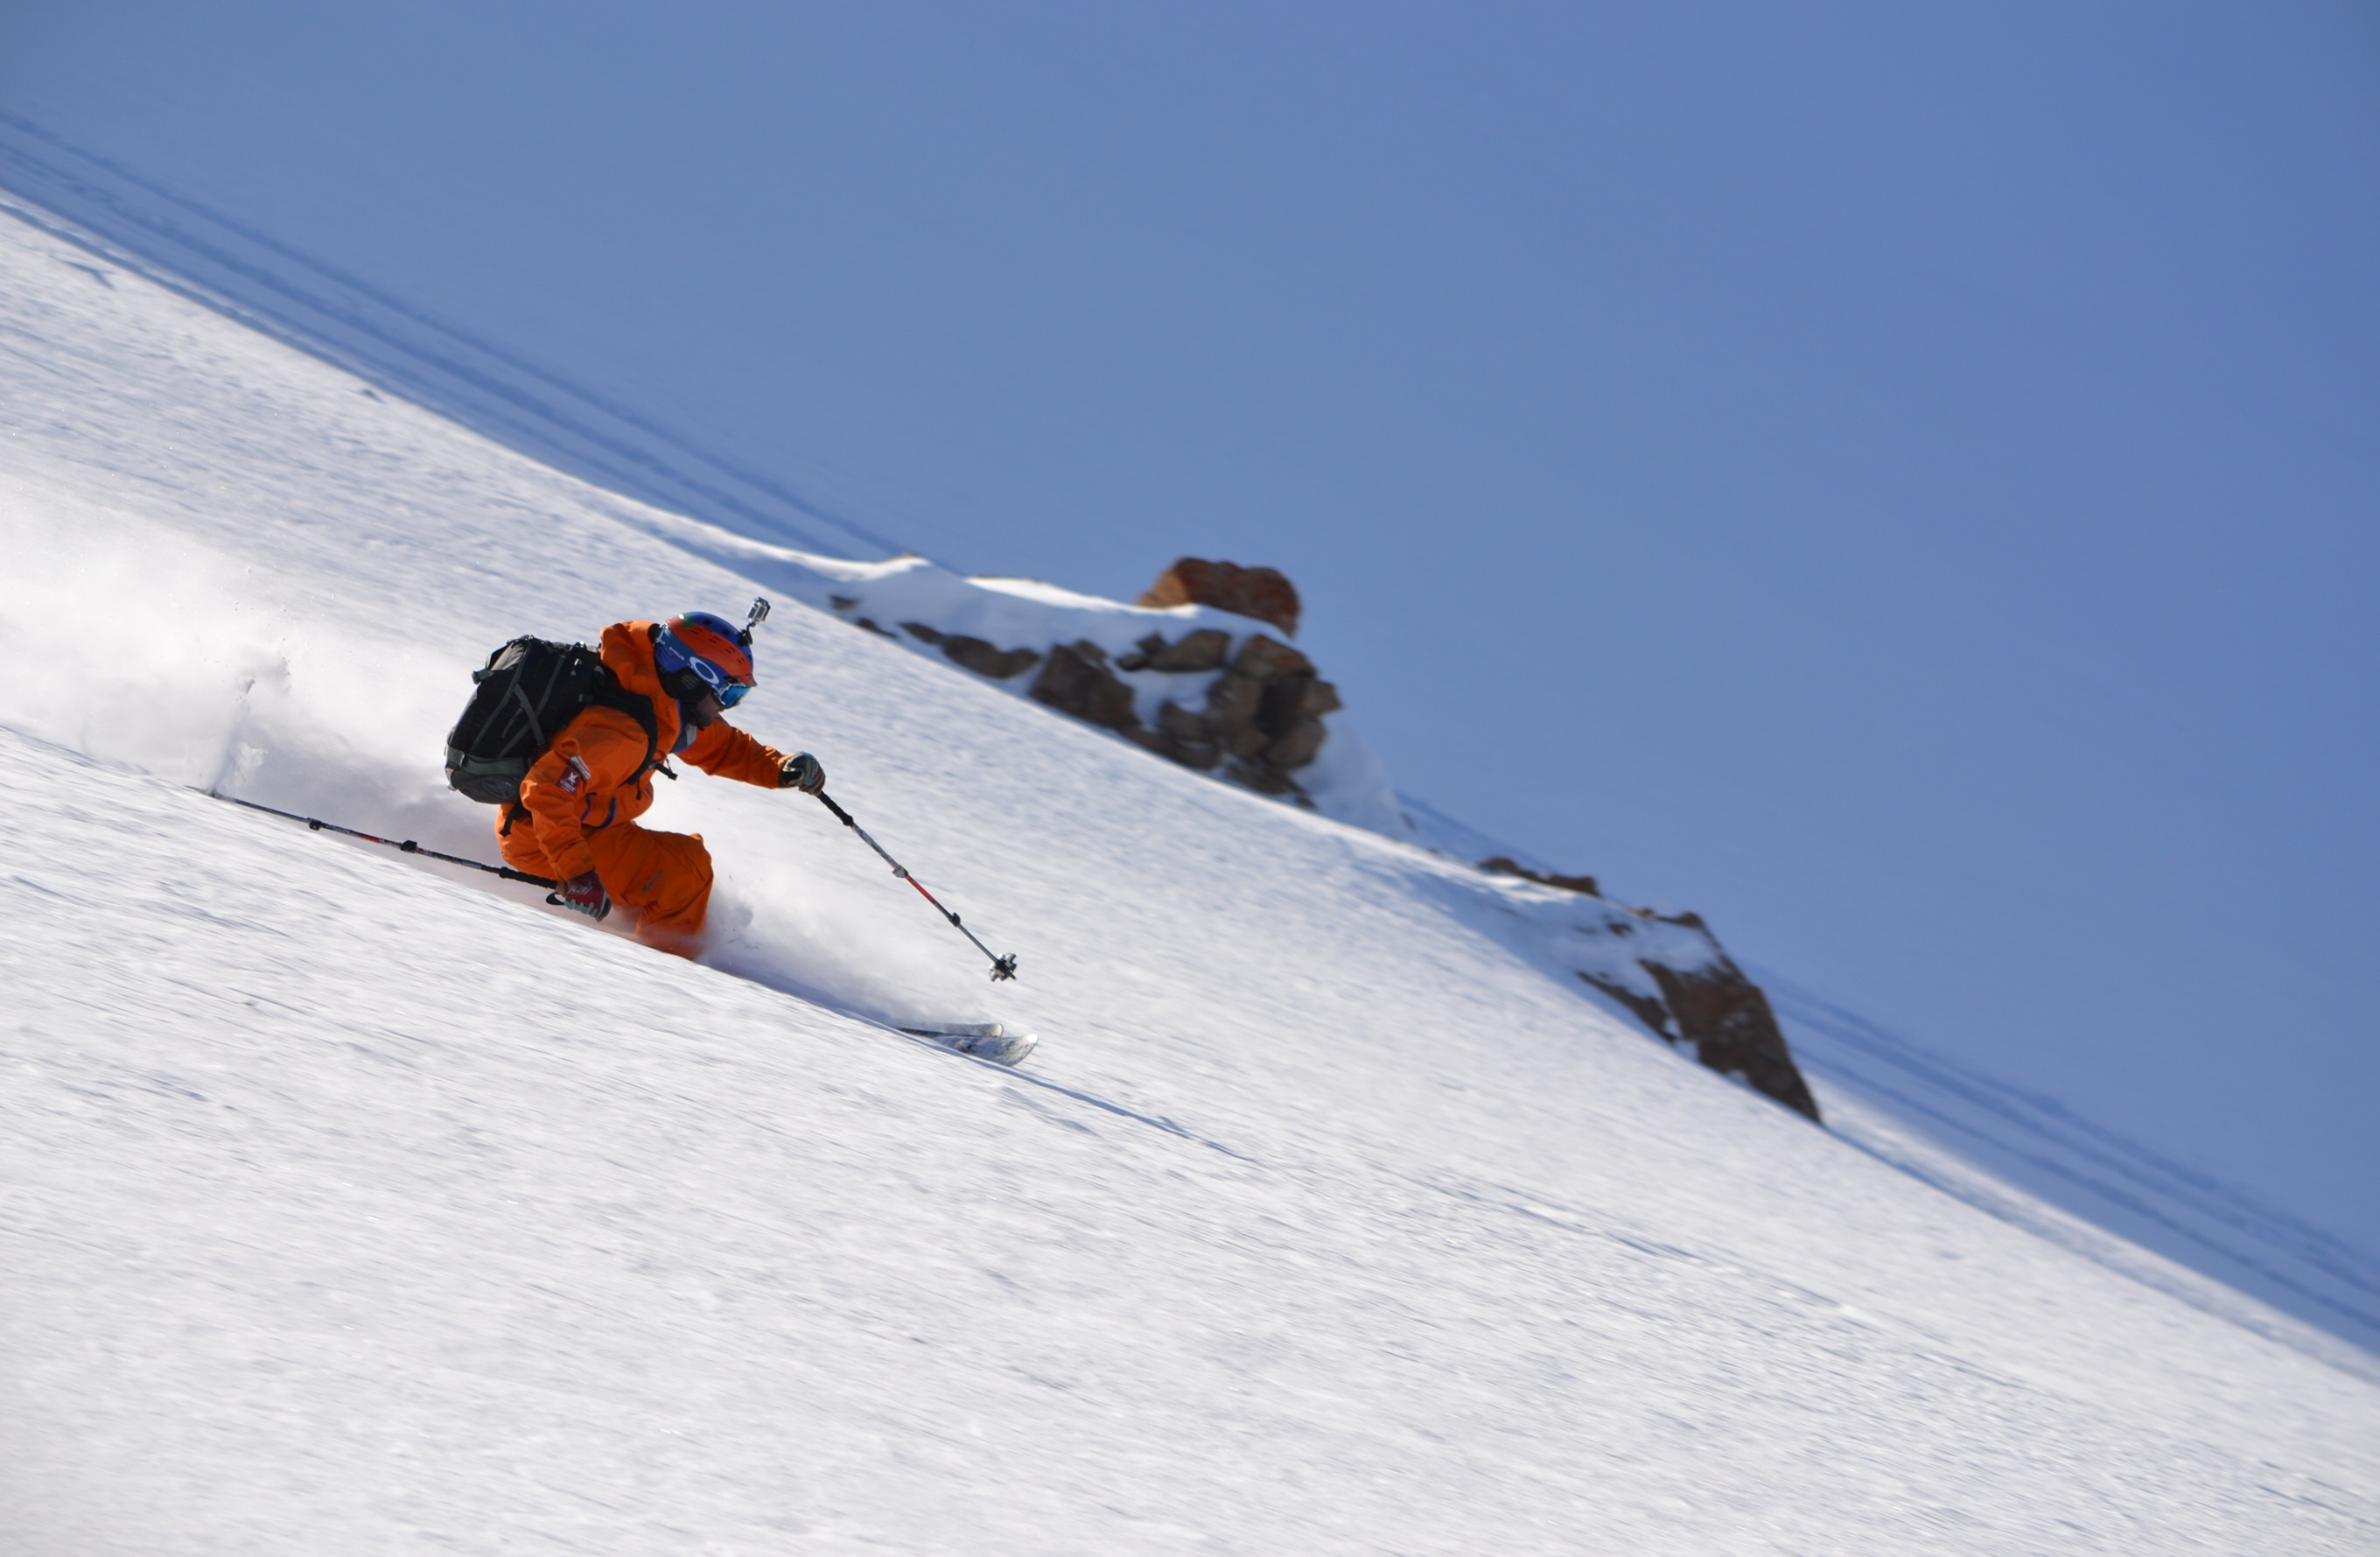 Skiing powder with New Generation